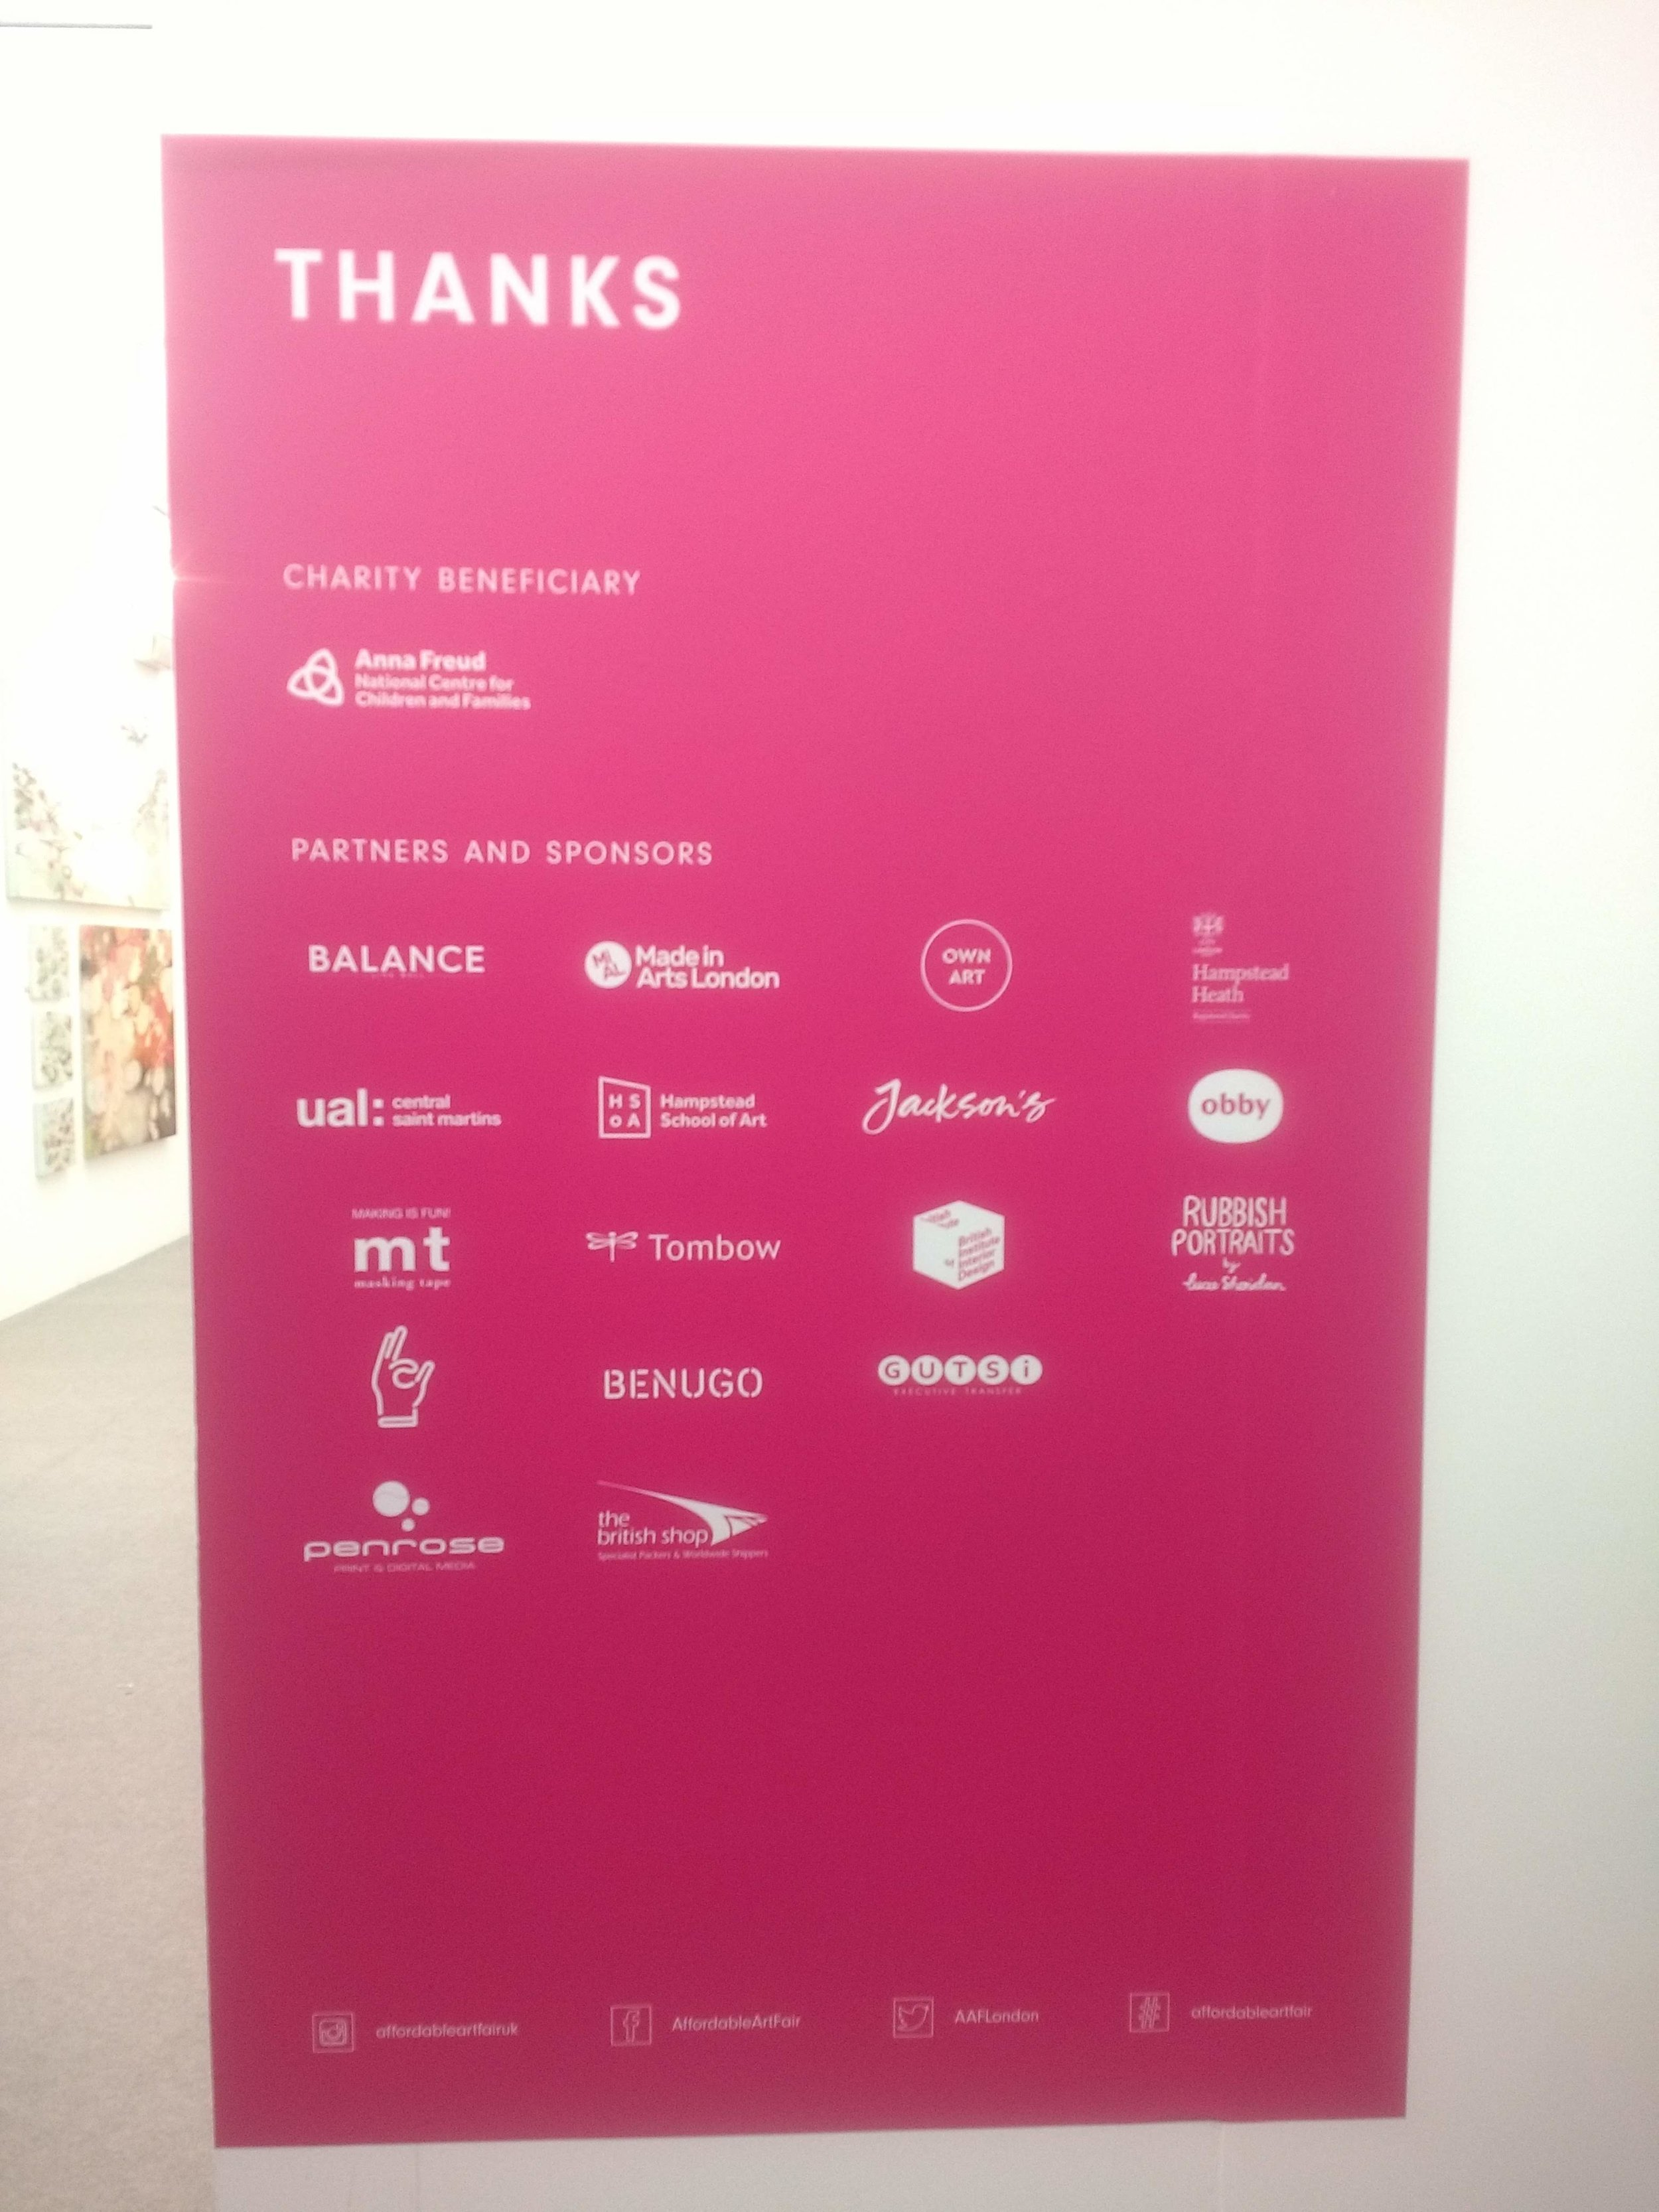 Pink 'Special thanks' poster featuring logos of participating companies, 'on the mend's logo is visible